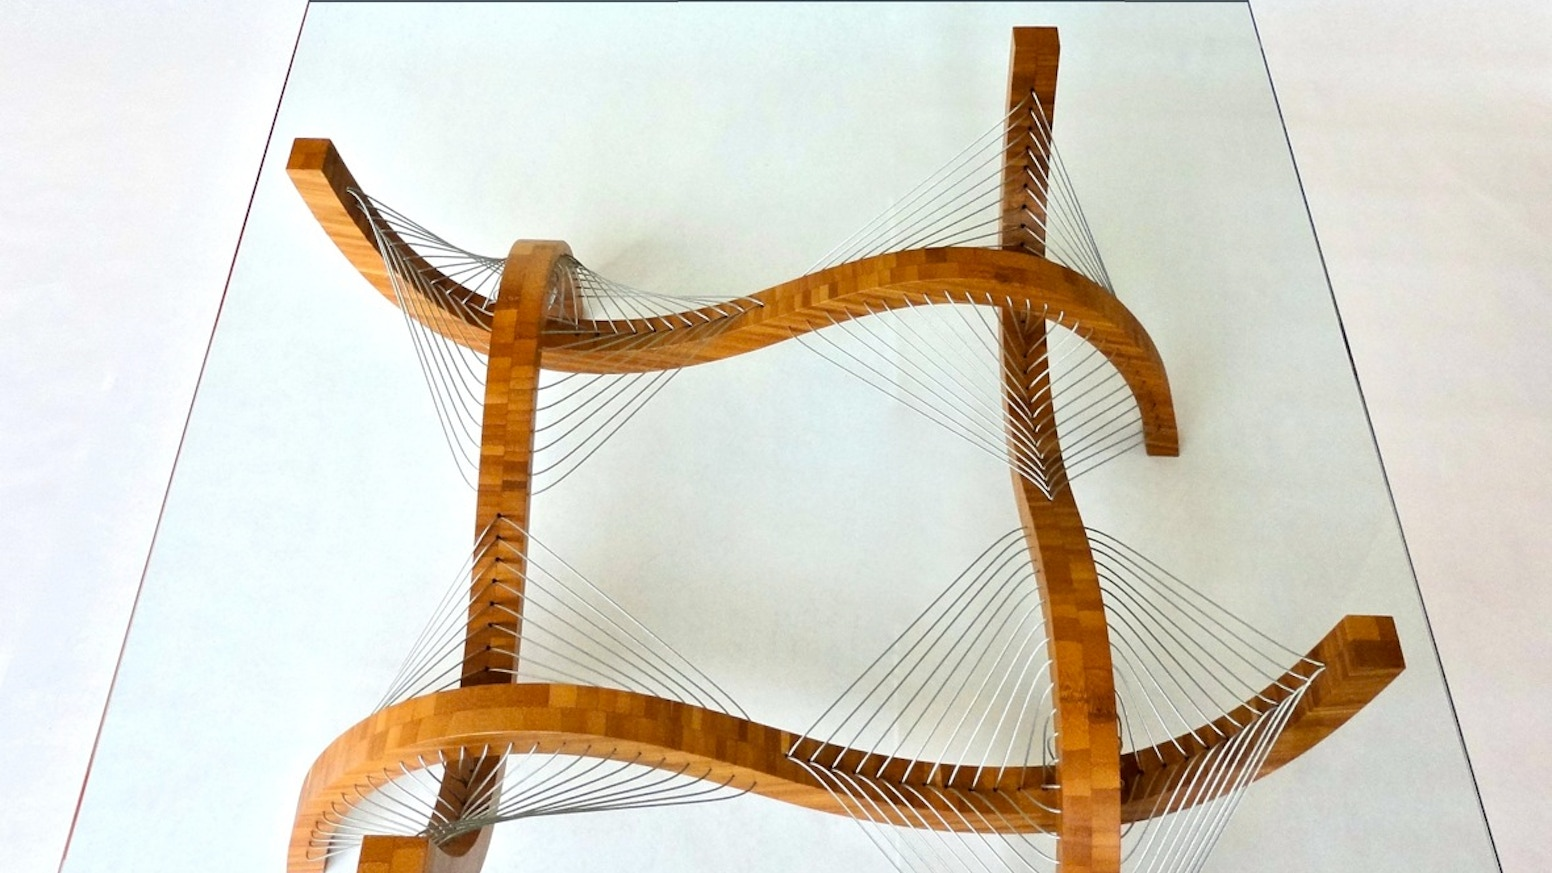 Contour Coffee Table By Robby Cuthbert Kickstarter